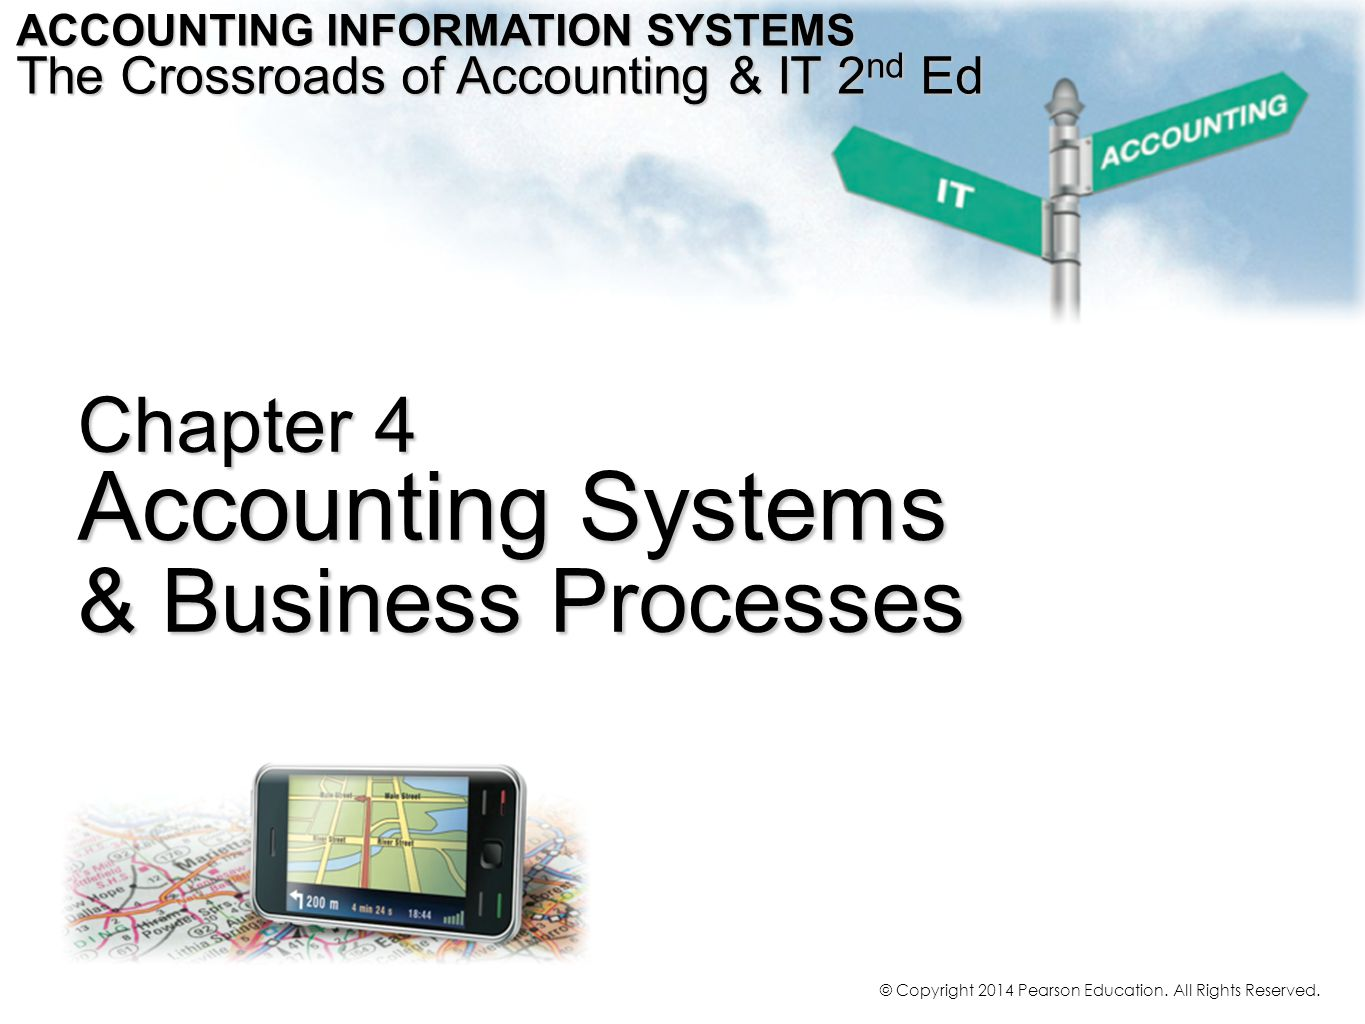 accounting information systems the crossroads of accounting & it pdf